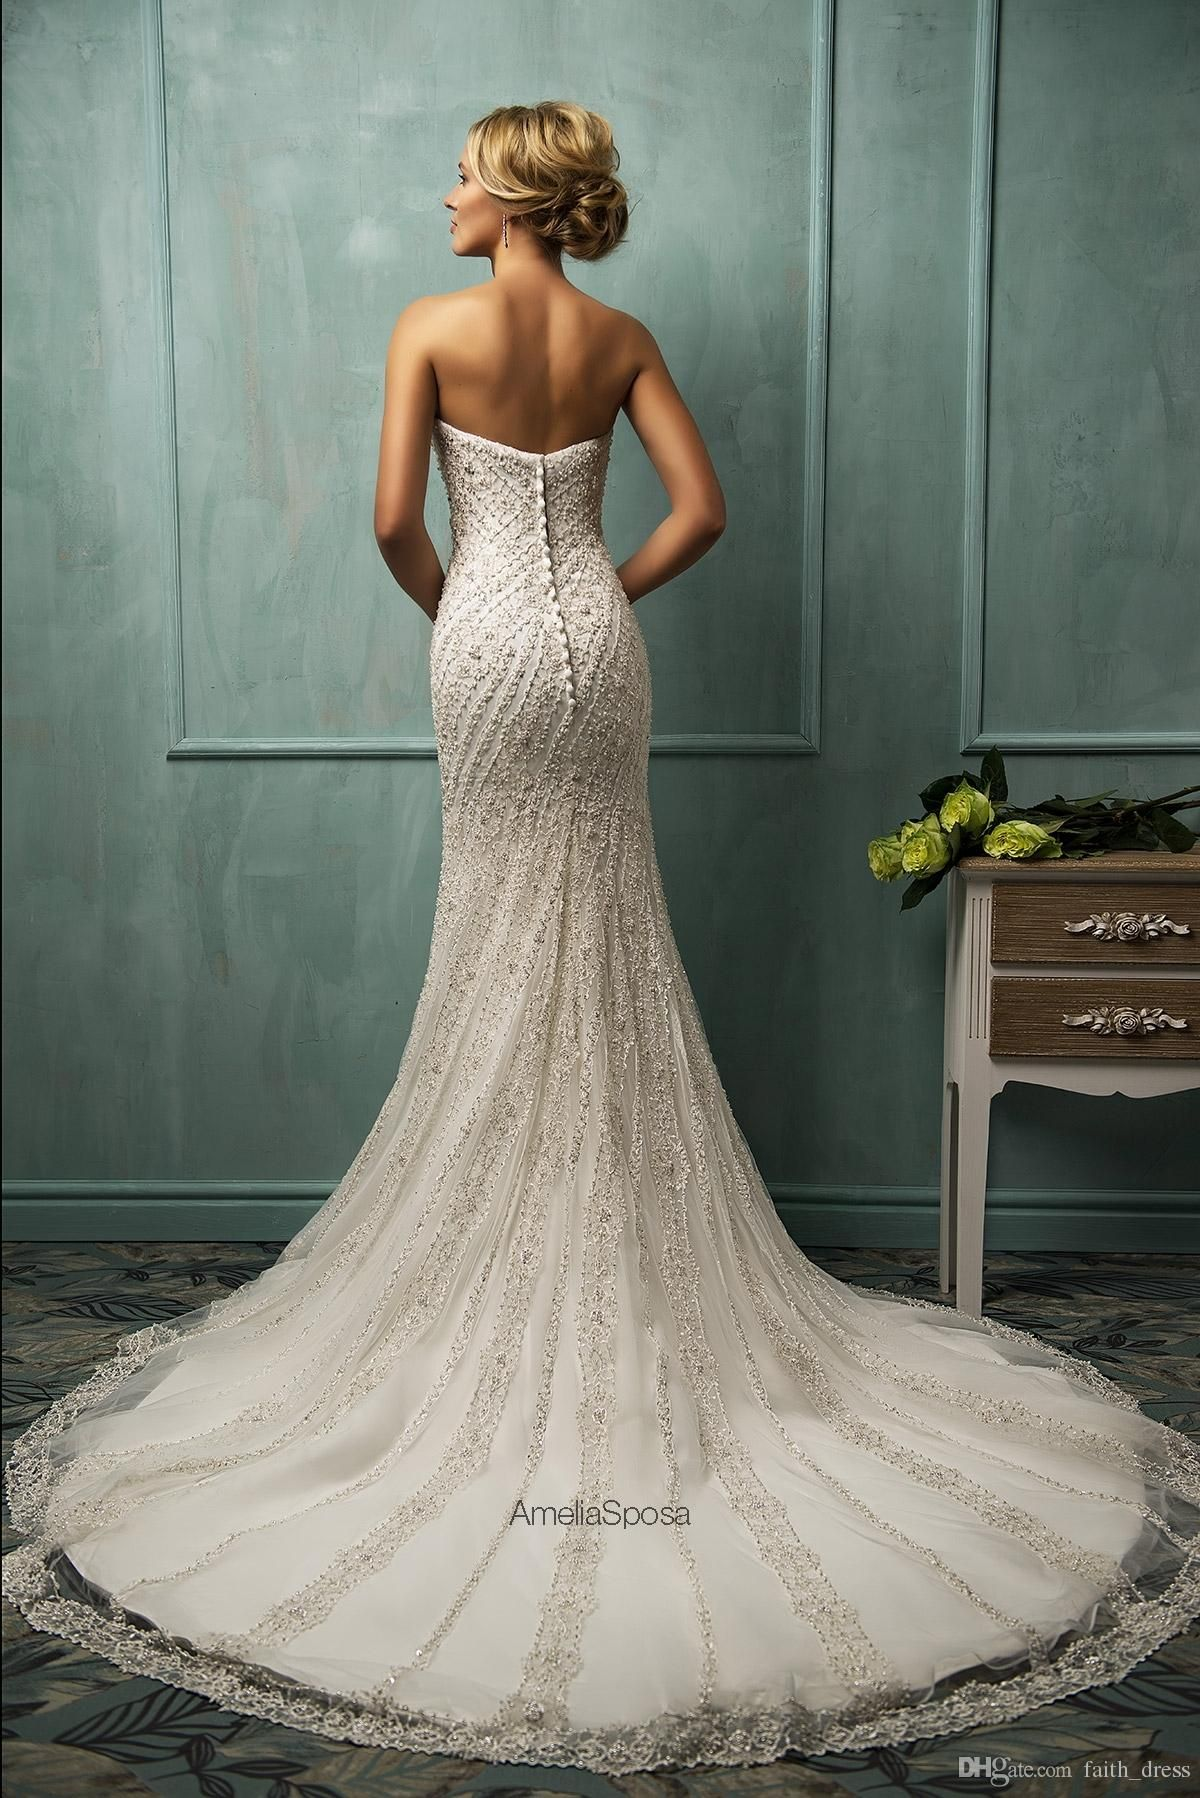 tight fitting wedding gowns